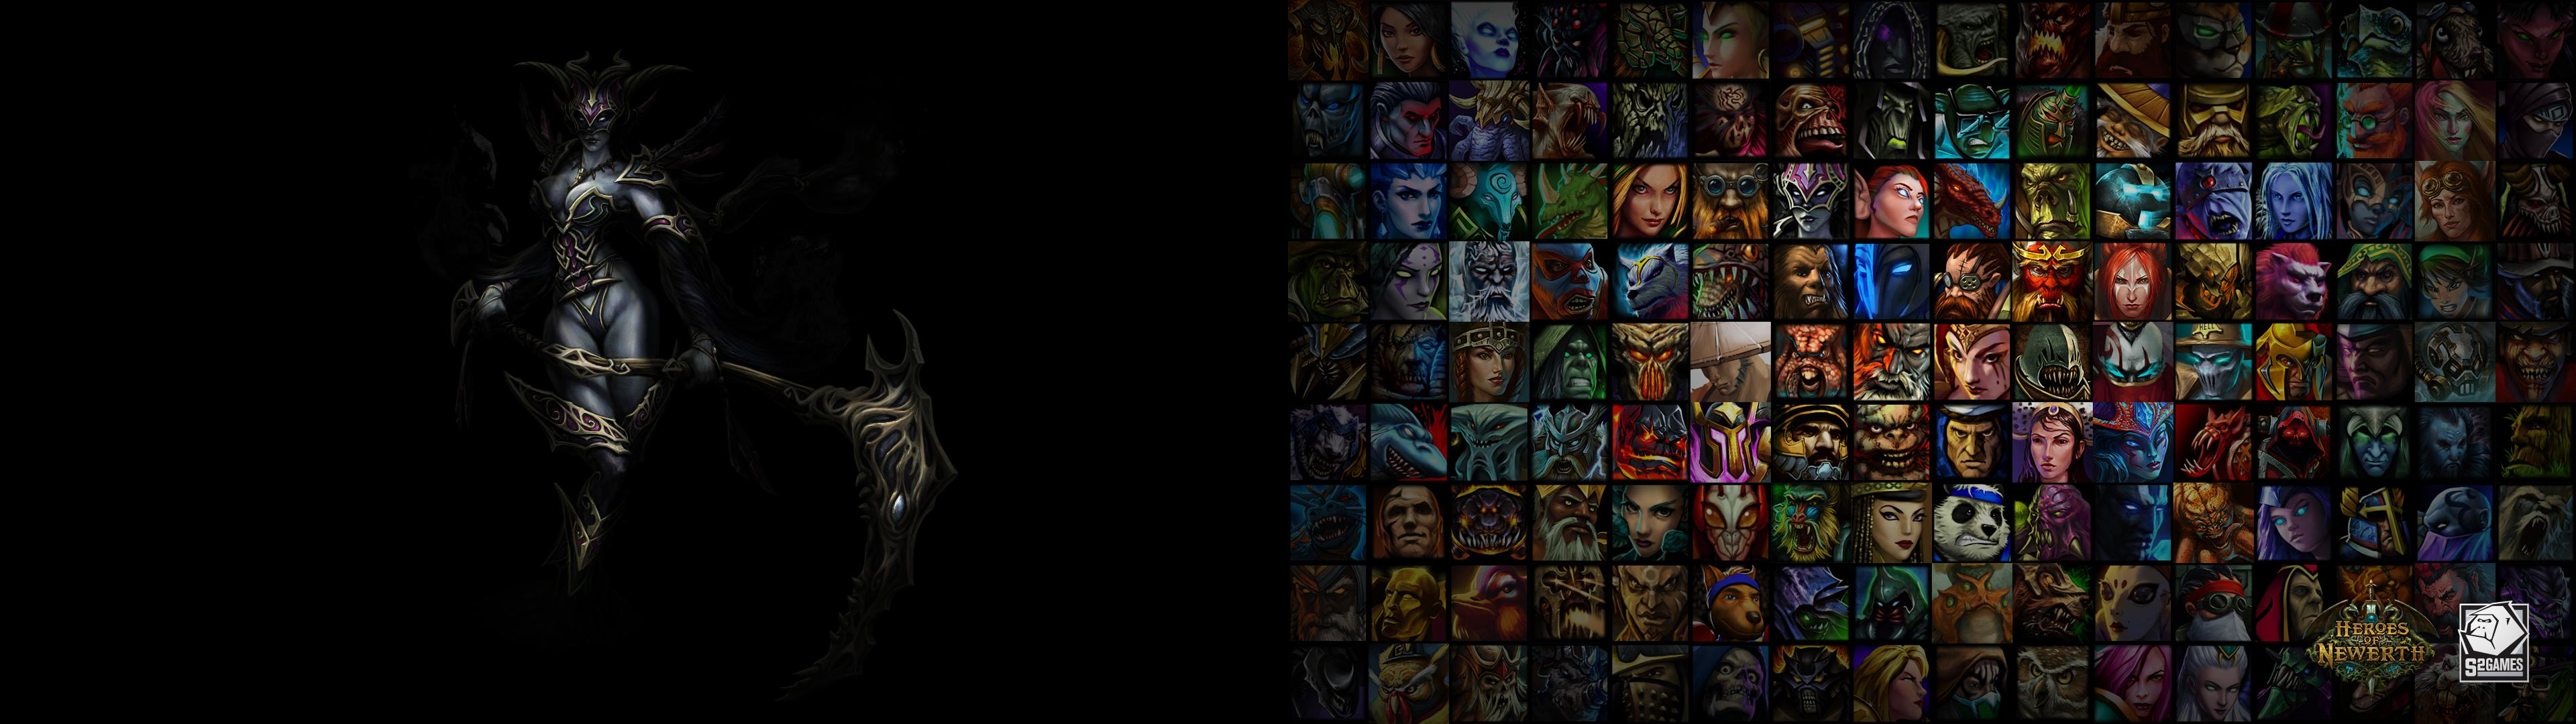 Dual Monitor Backgrounds 3840x1080 28957 Hd Wallpapers Background 3840x1080